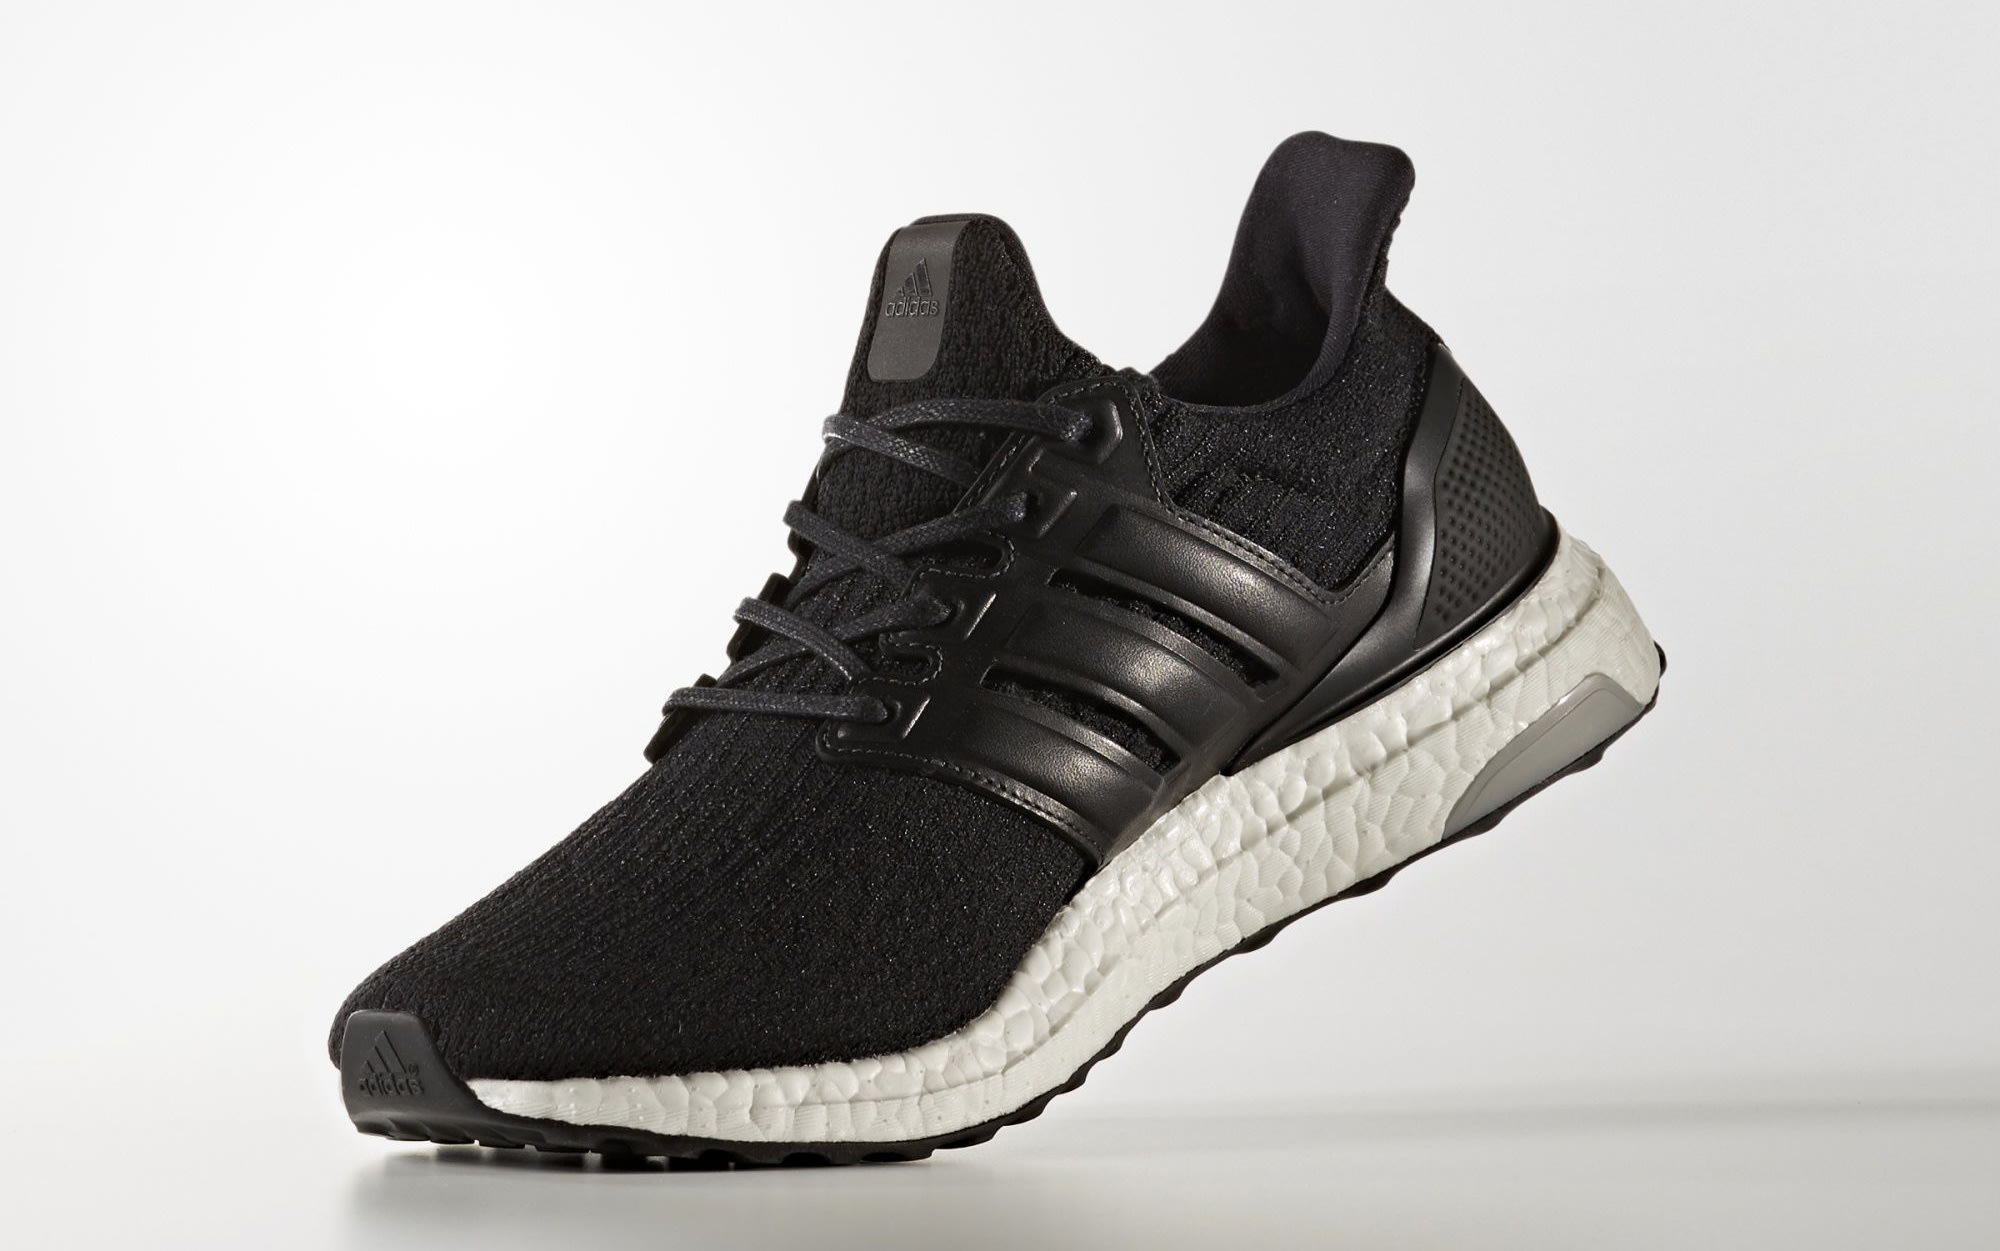 Black Adidas Ultra Boost Leather Cage BA8924 | Sole Collector